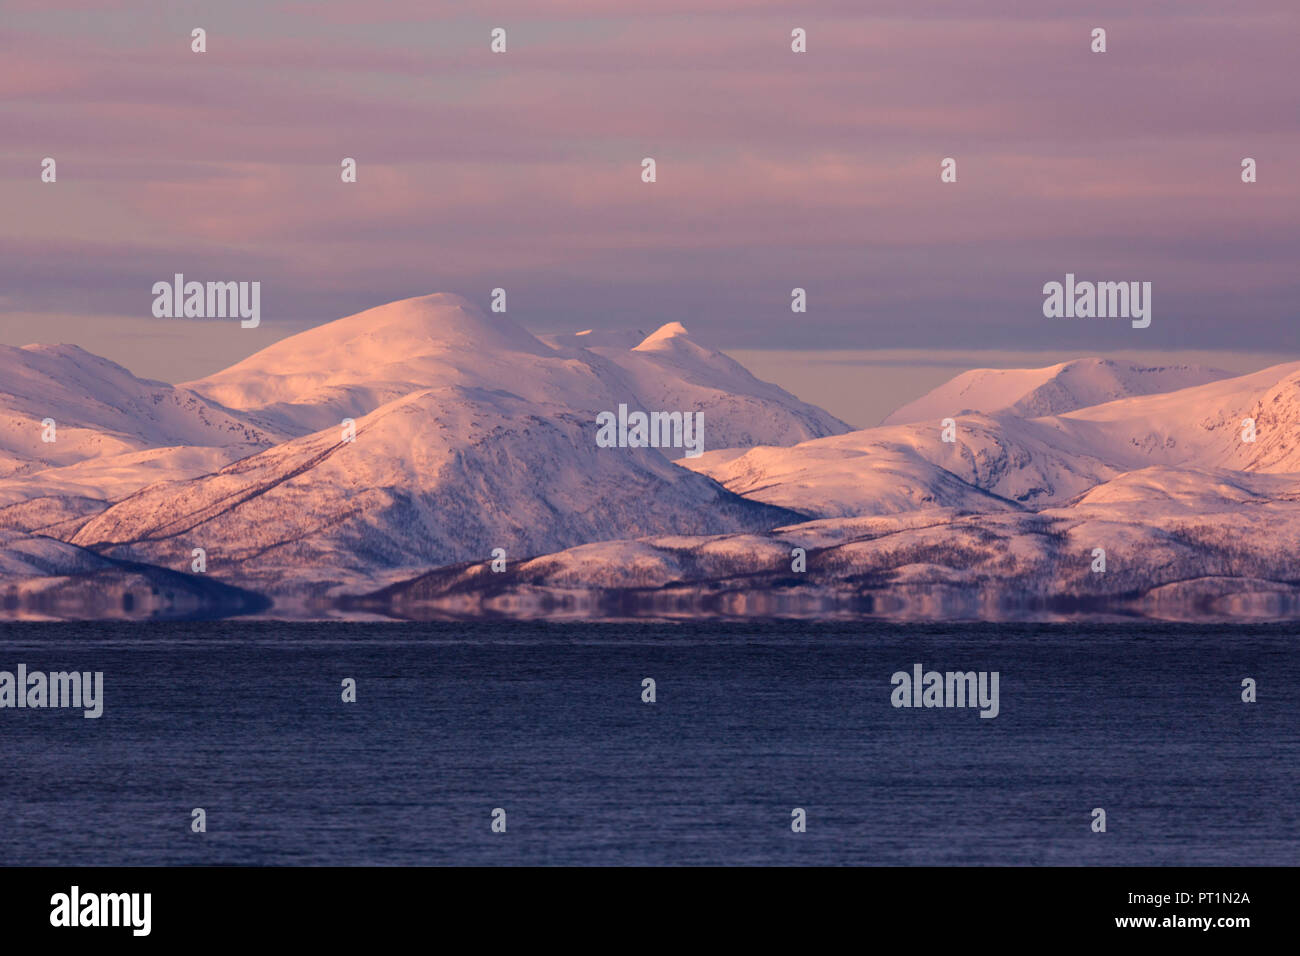 Fata Morgana mirage on a fjord near Tromso with Senja island mountains in background, Tromso, Troms, Norway, Europe Stock Photo